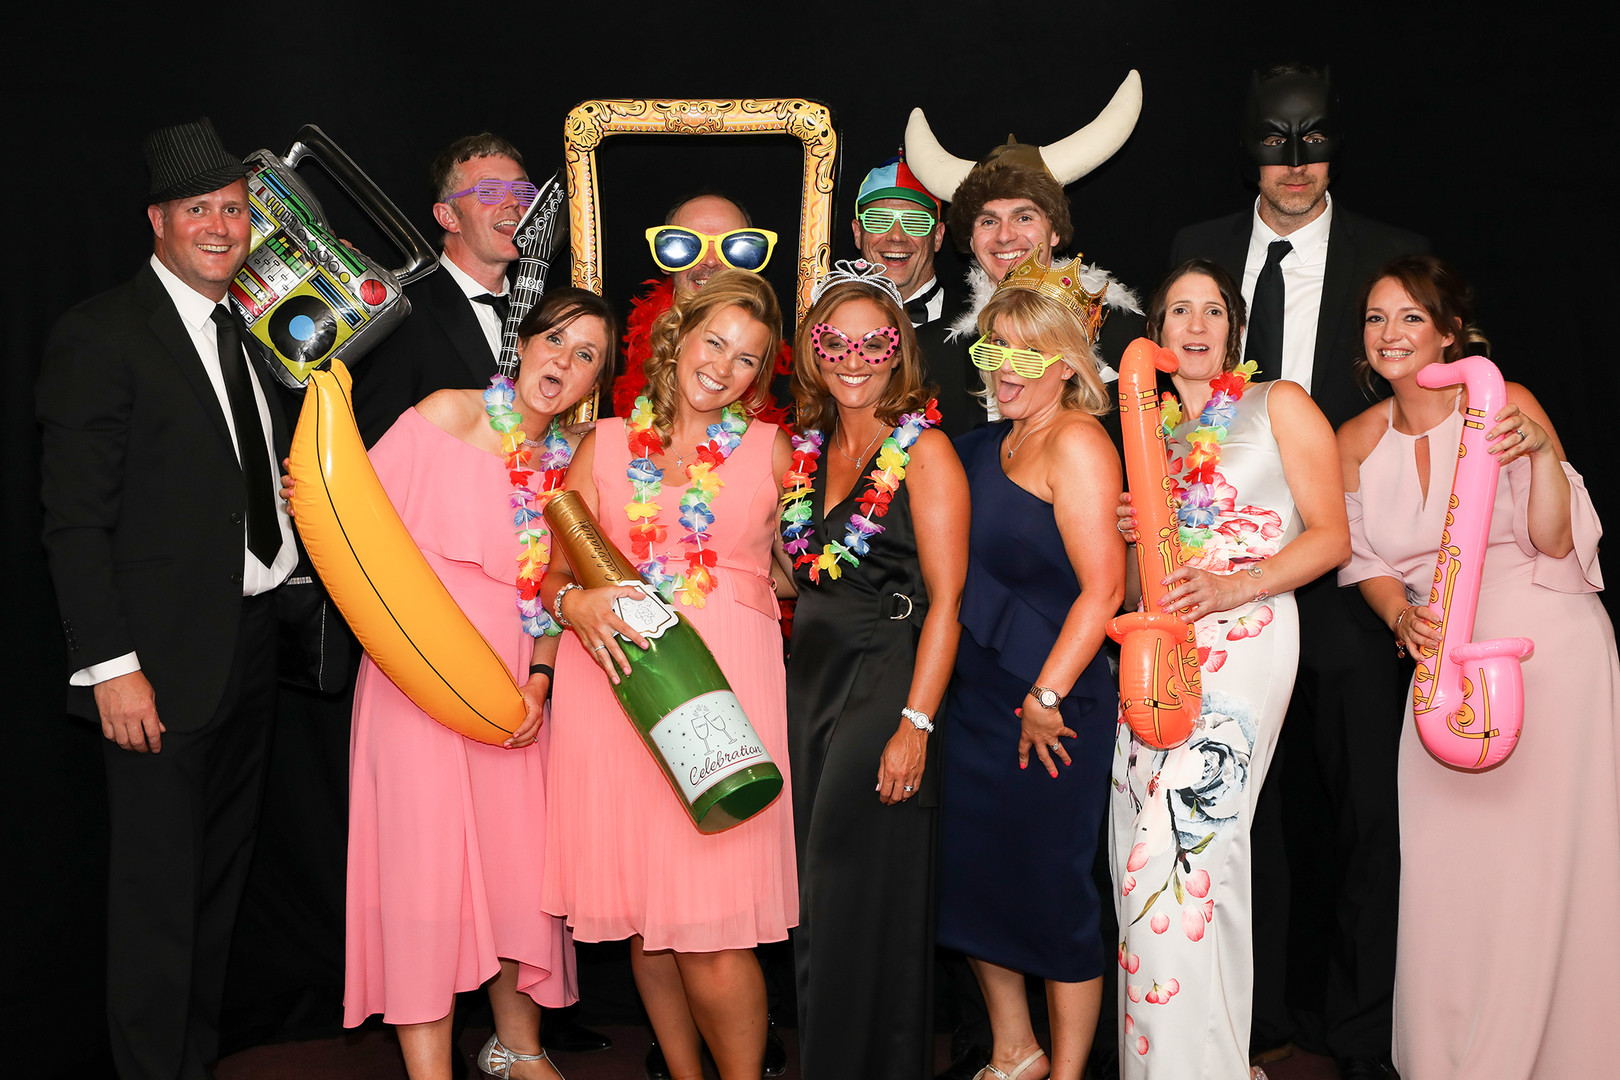 photo-booth-hire-warrington-003.jpg